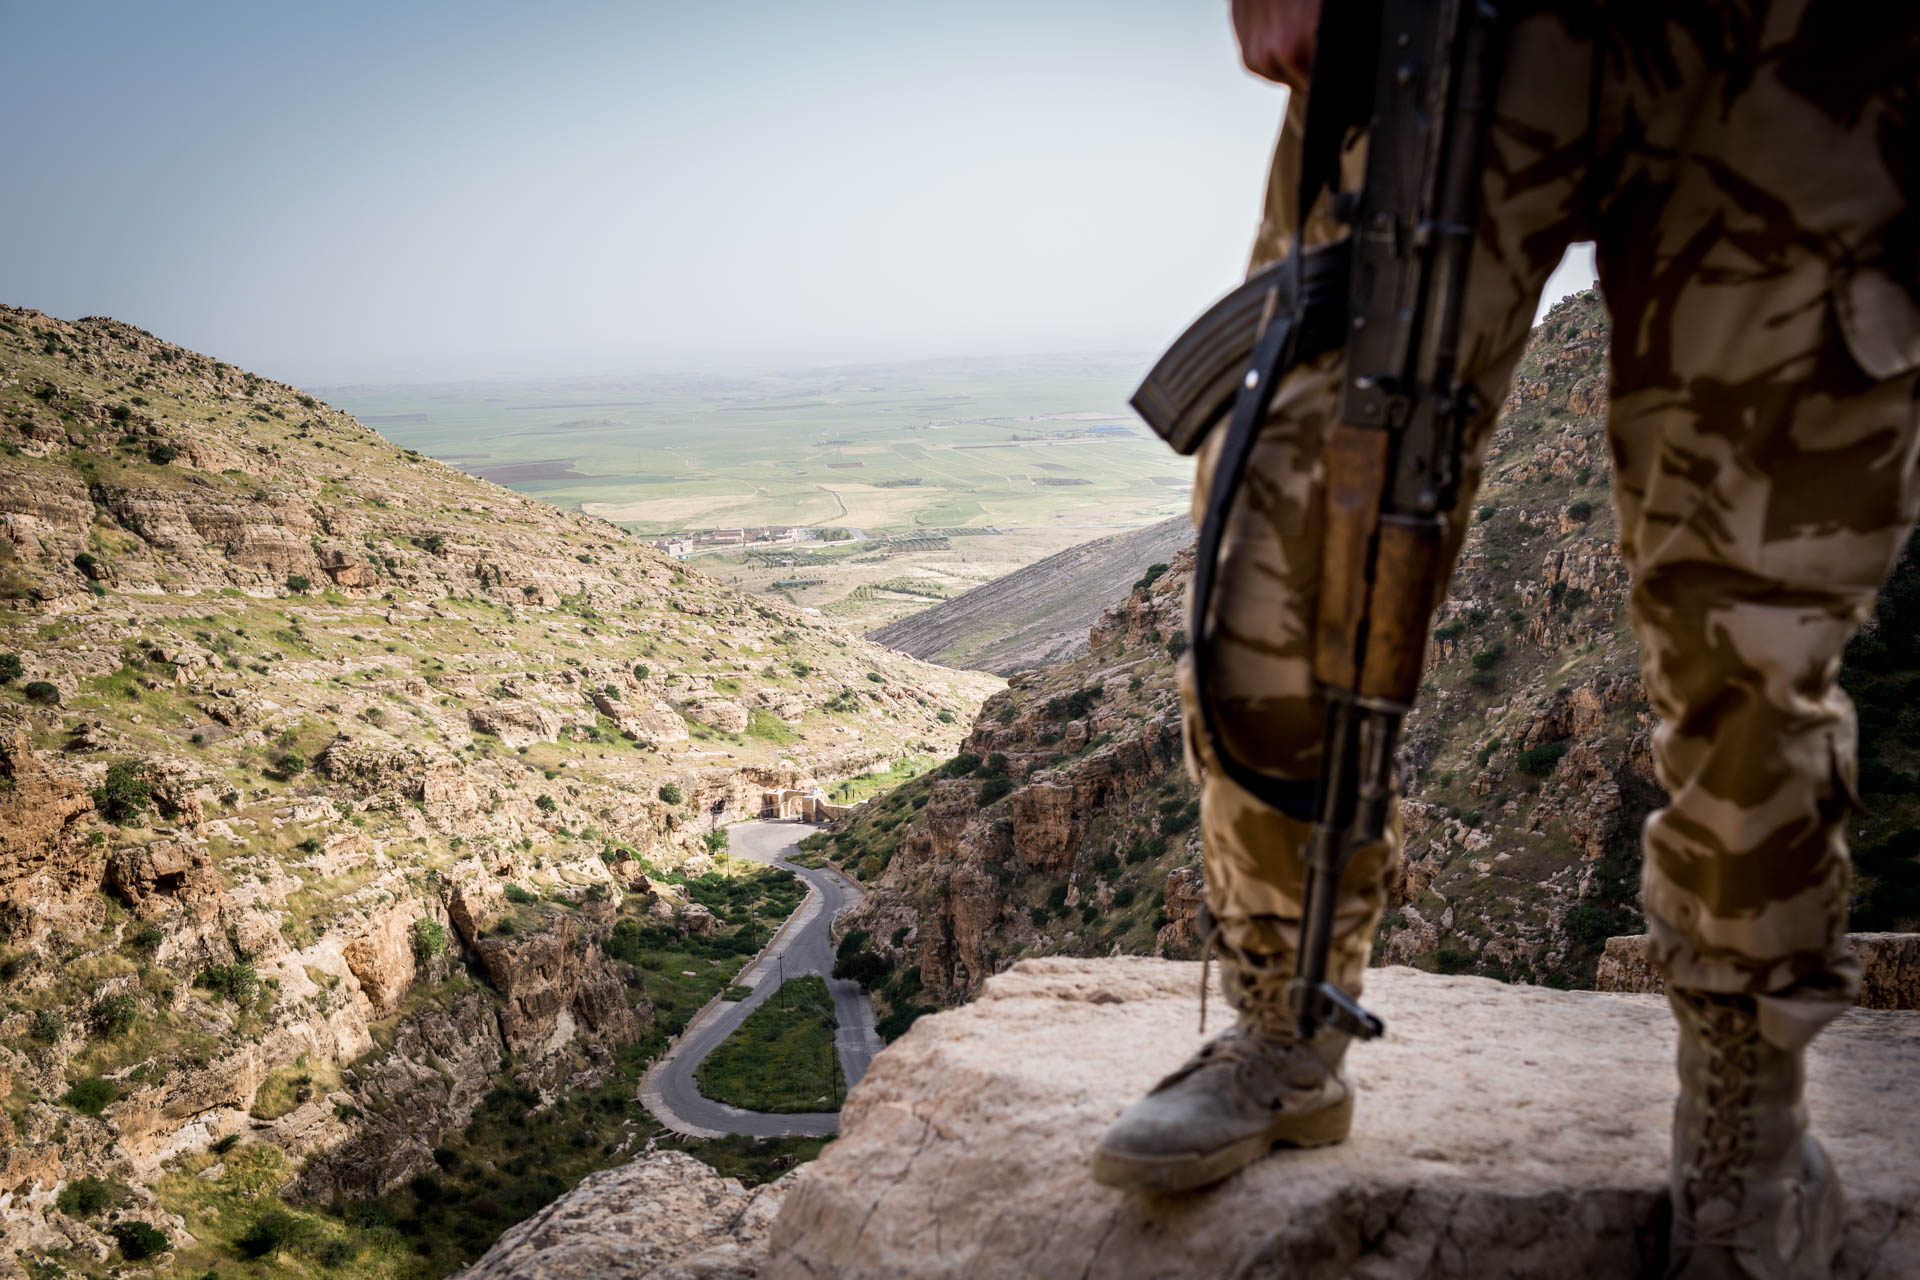 With a fighter standing on the cliff, the valley behind Alqosh can be seen. Mosul lies only about 40 km in this direction.